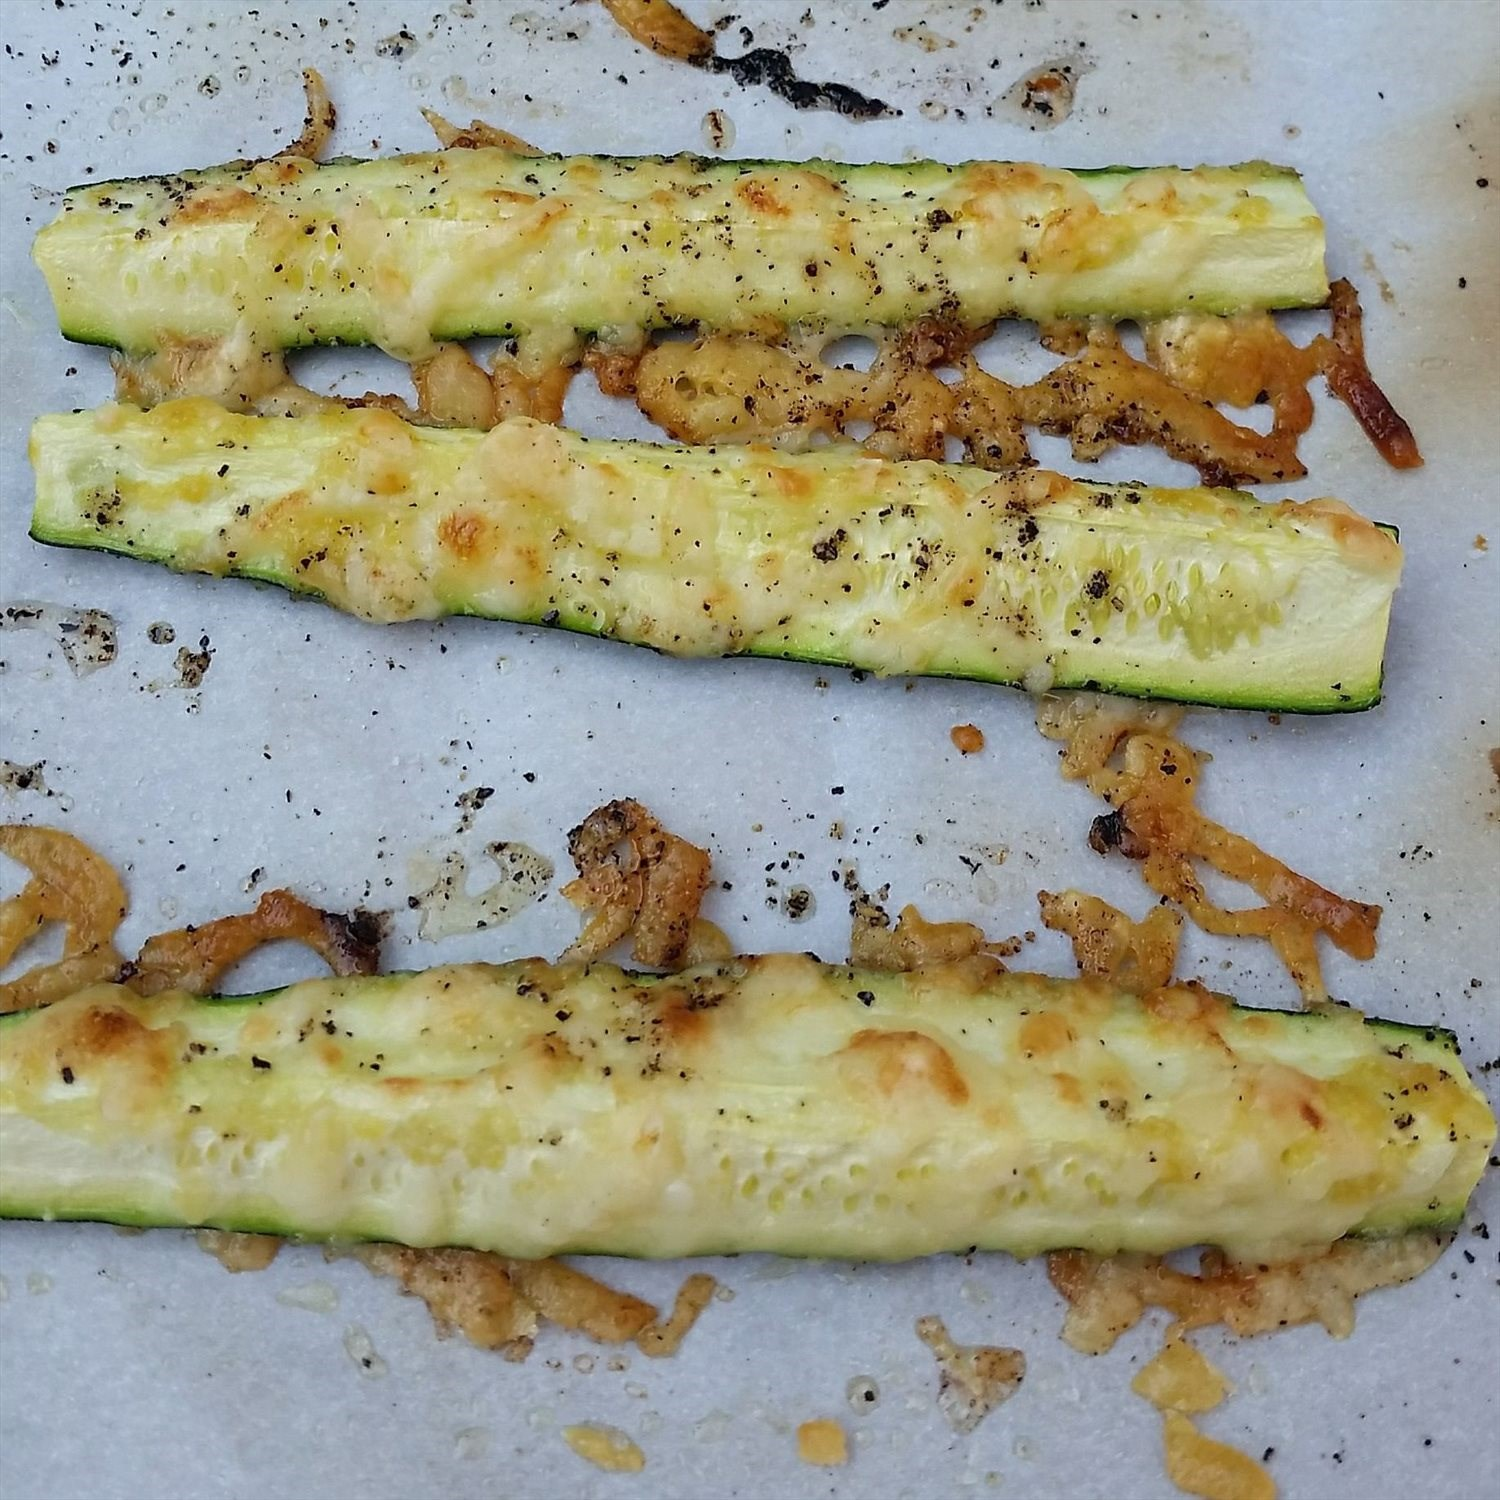 Oven-Roasted Garlic and Parmesan Zucchini